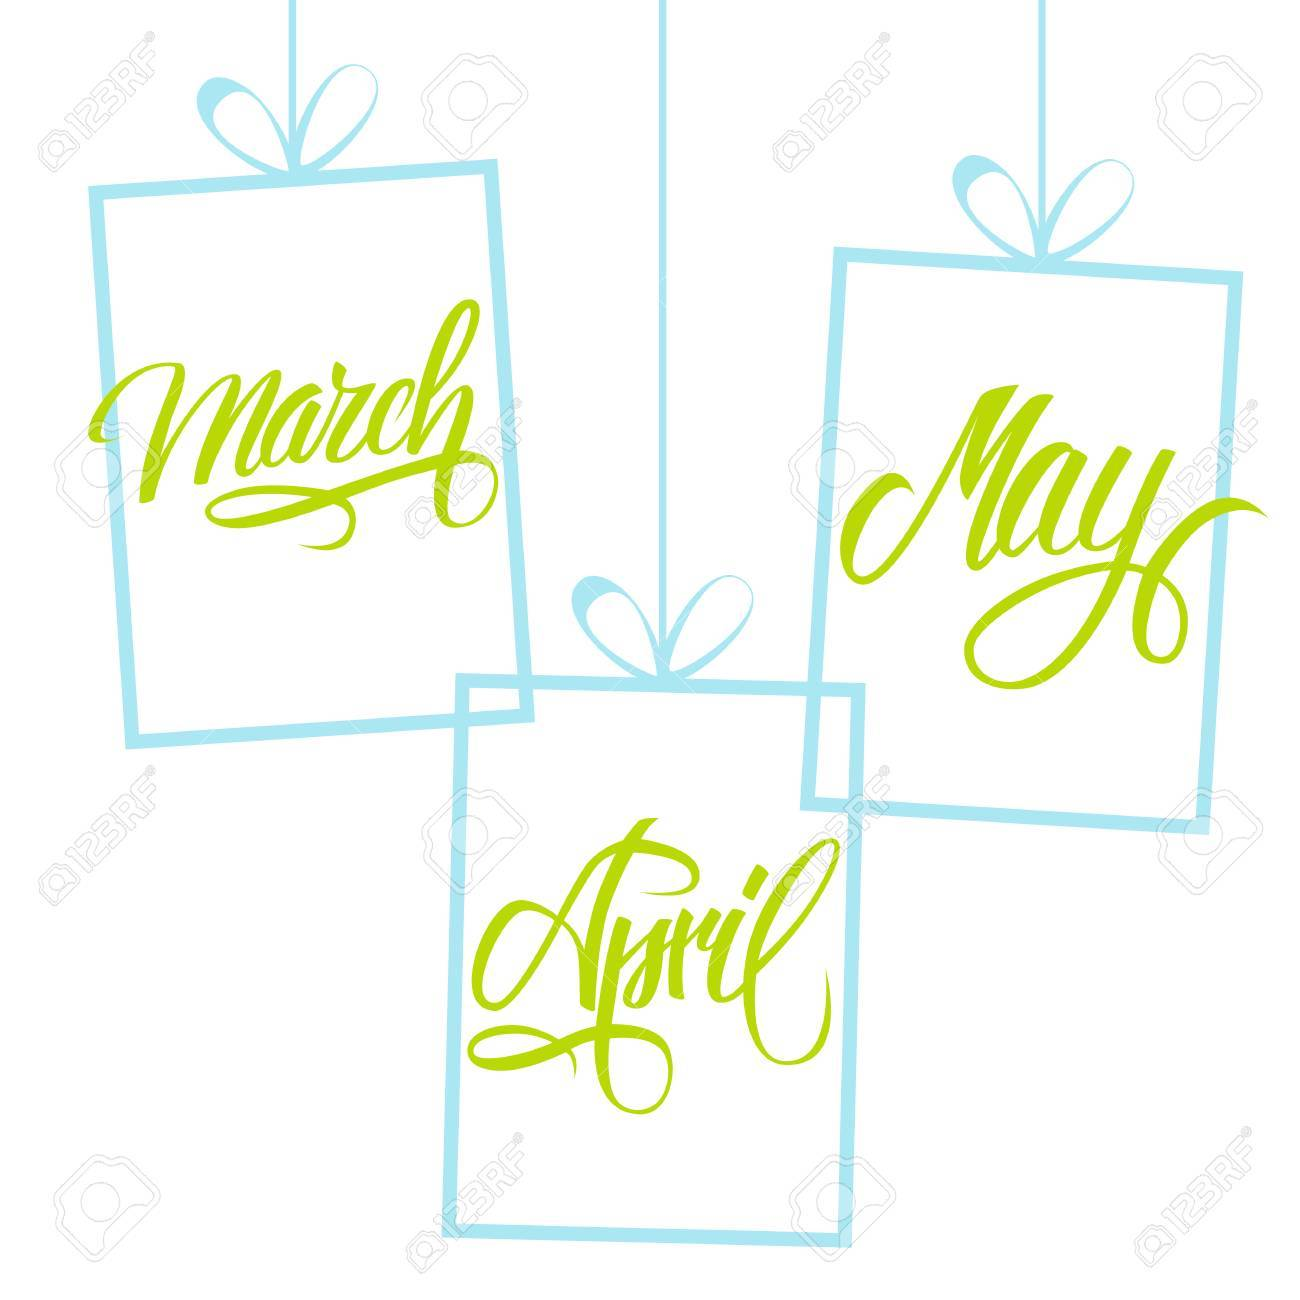 March, April, May  Spring months  Spring month lettering  Calligraphic